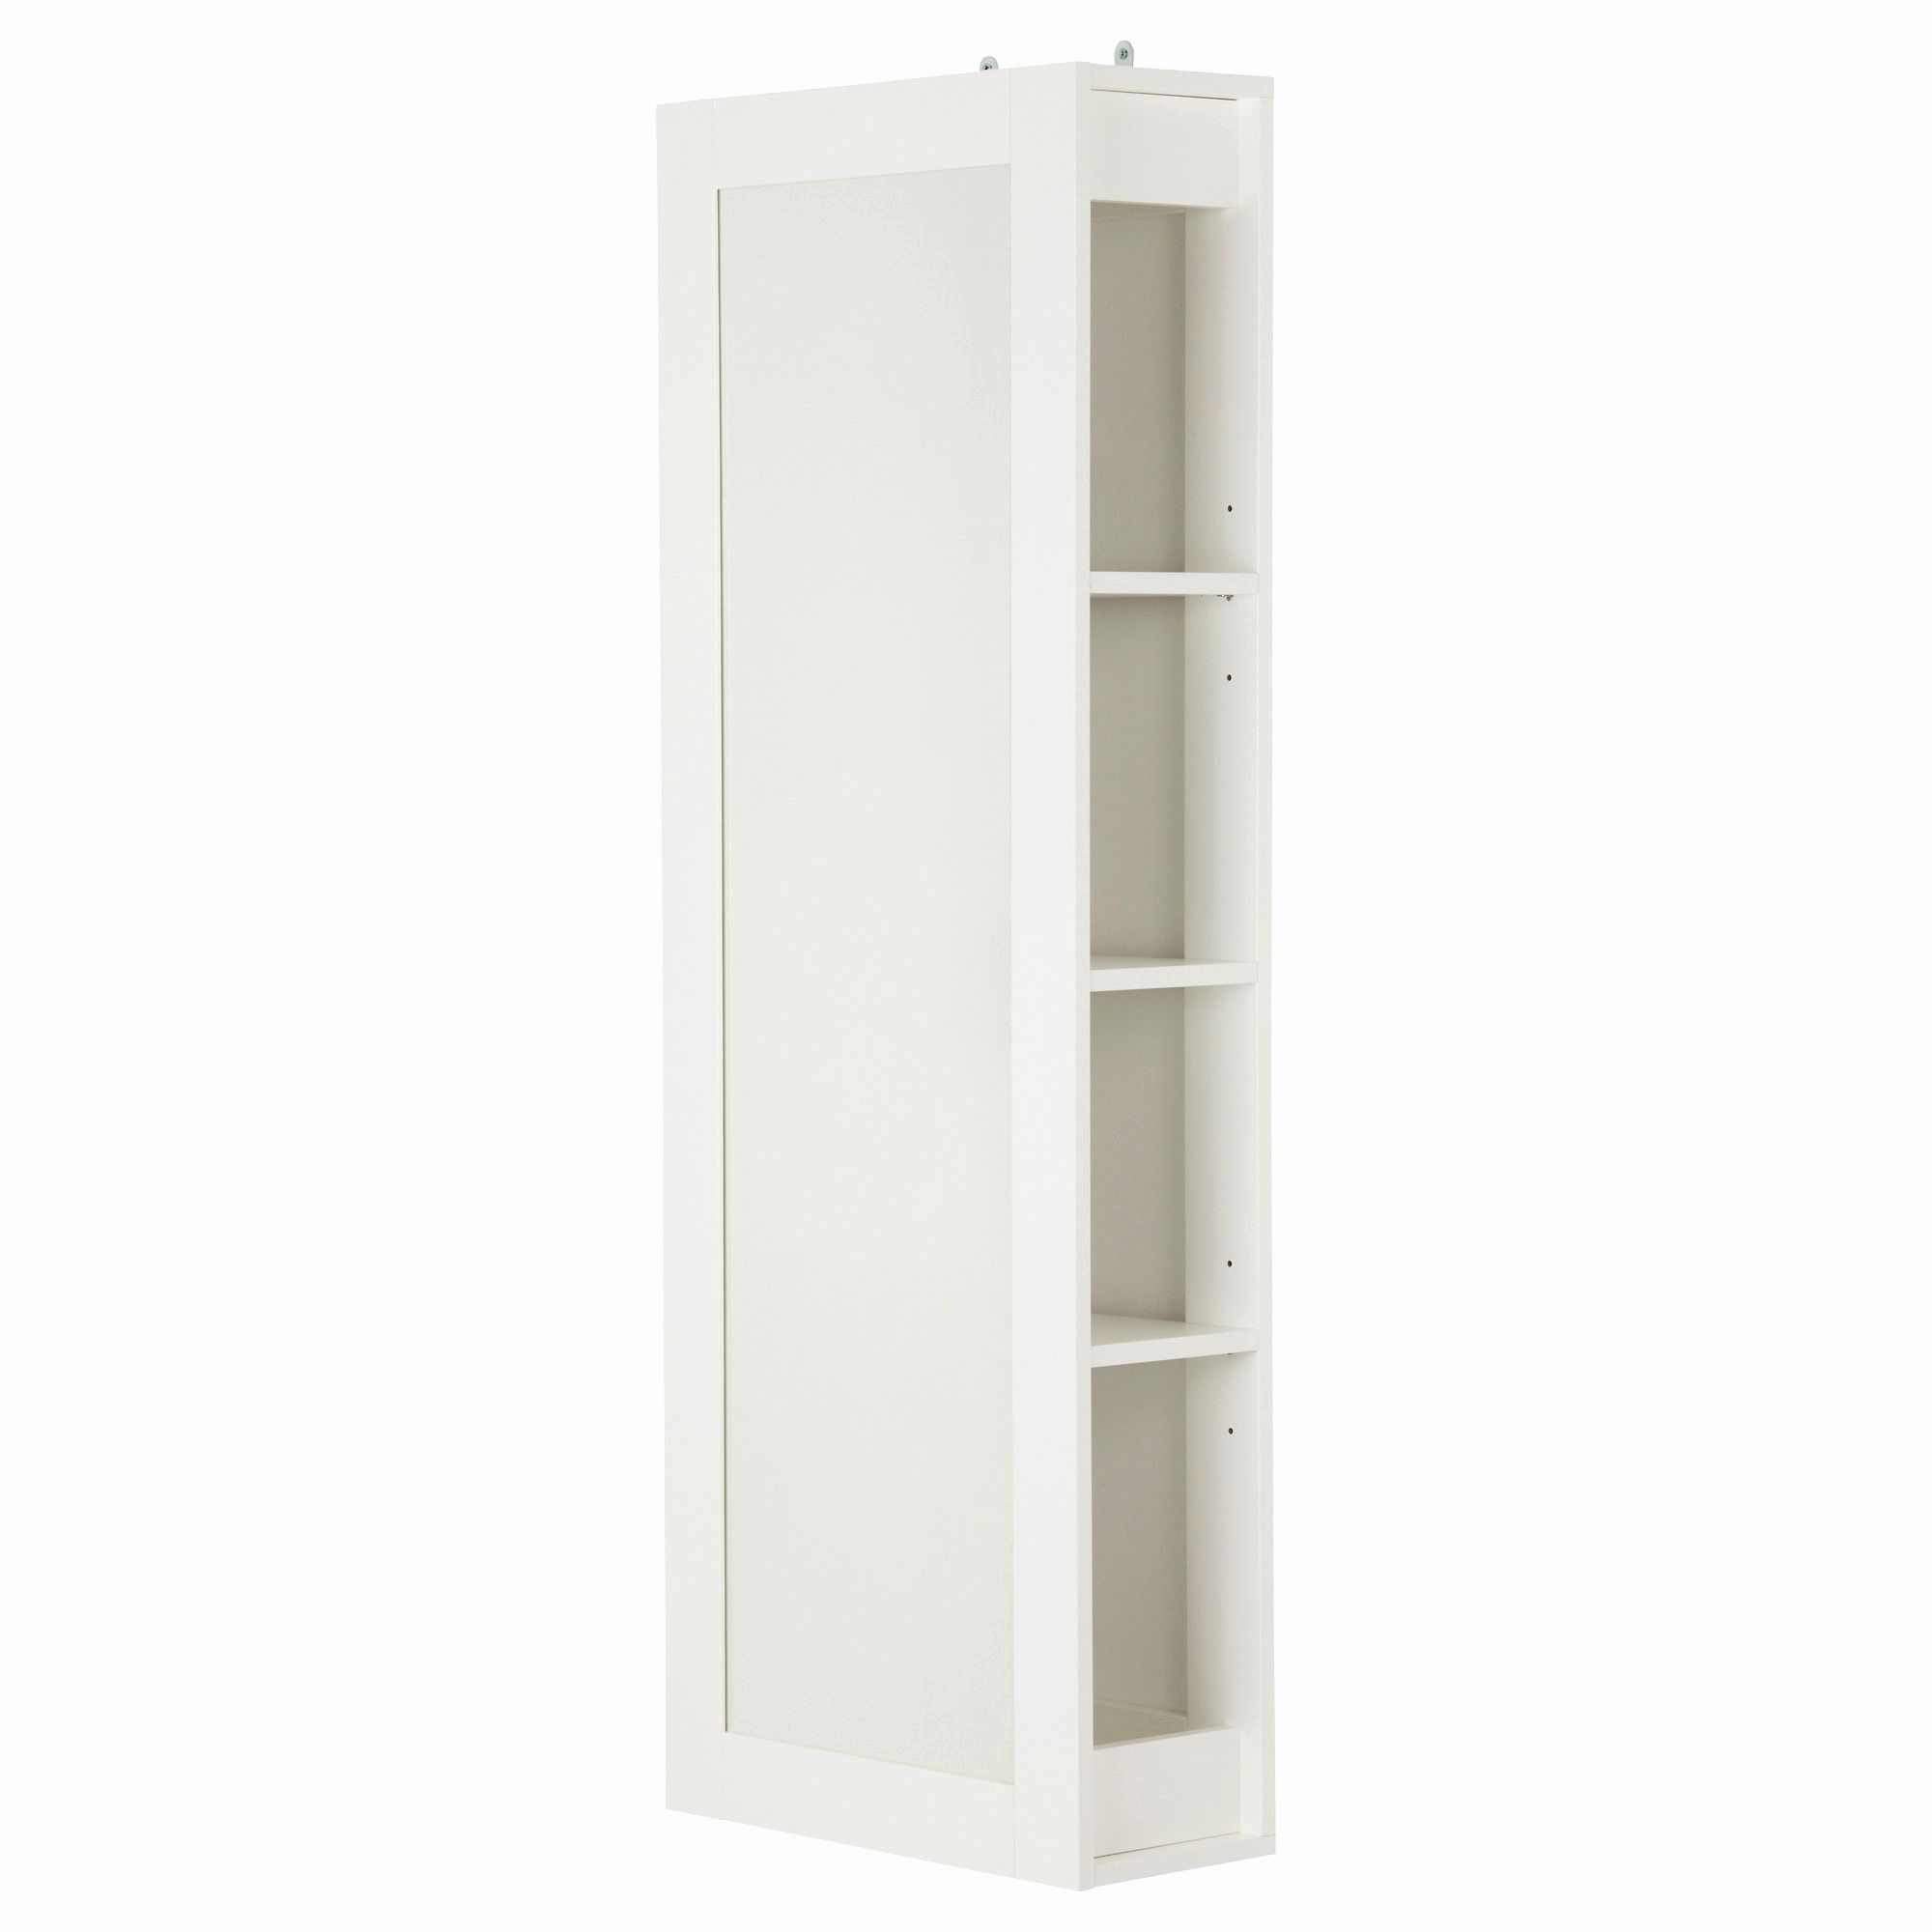 Armoire De Toilette Miroir Armoire De Toilette Miroir Armoire De Toilette Salle De Bain Tall Bathroom Storage Cabinet Tall Bathroom Storage Wall Mirrors Ikea